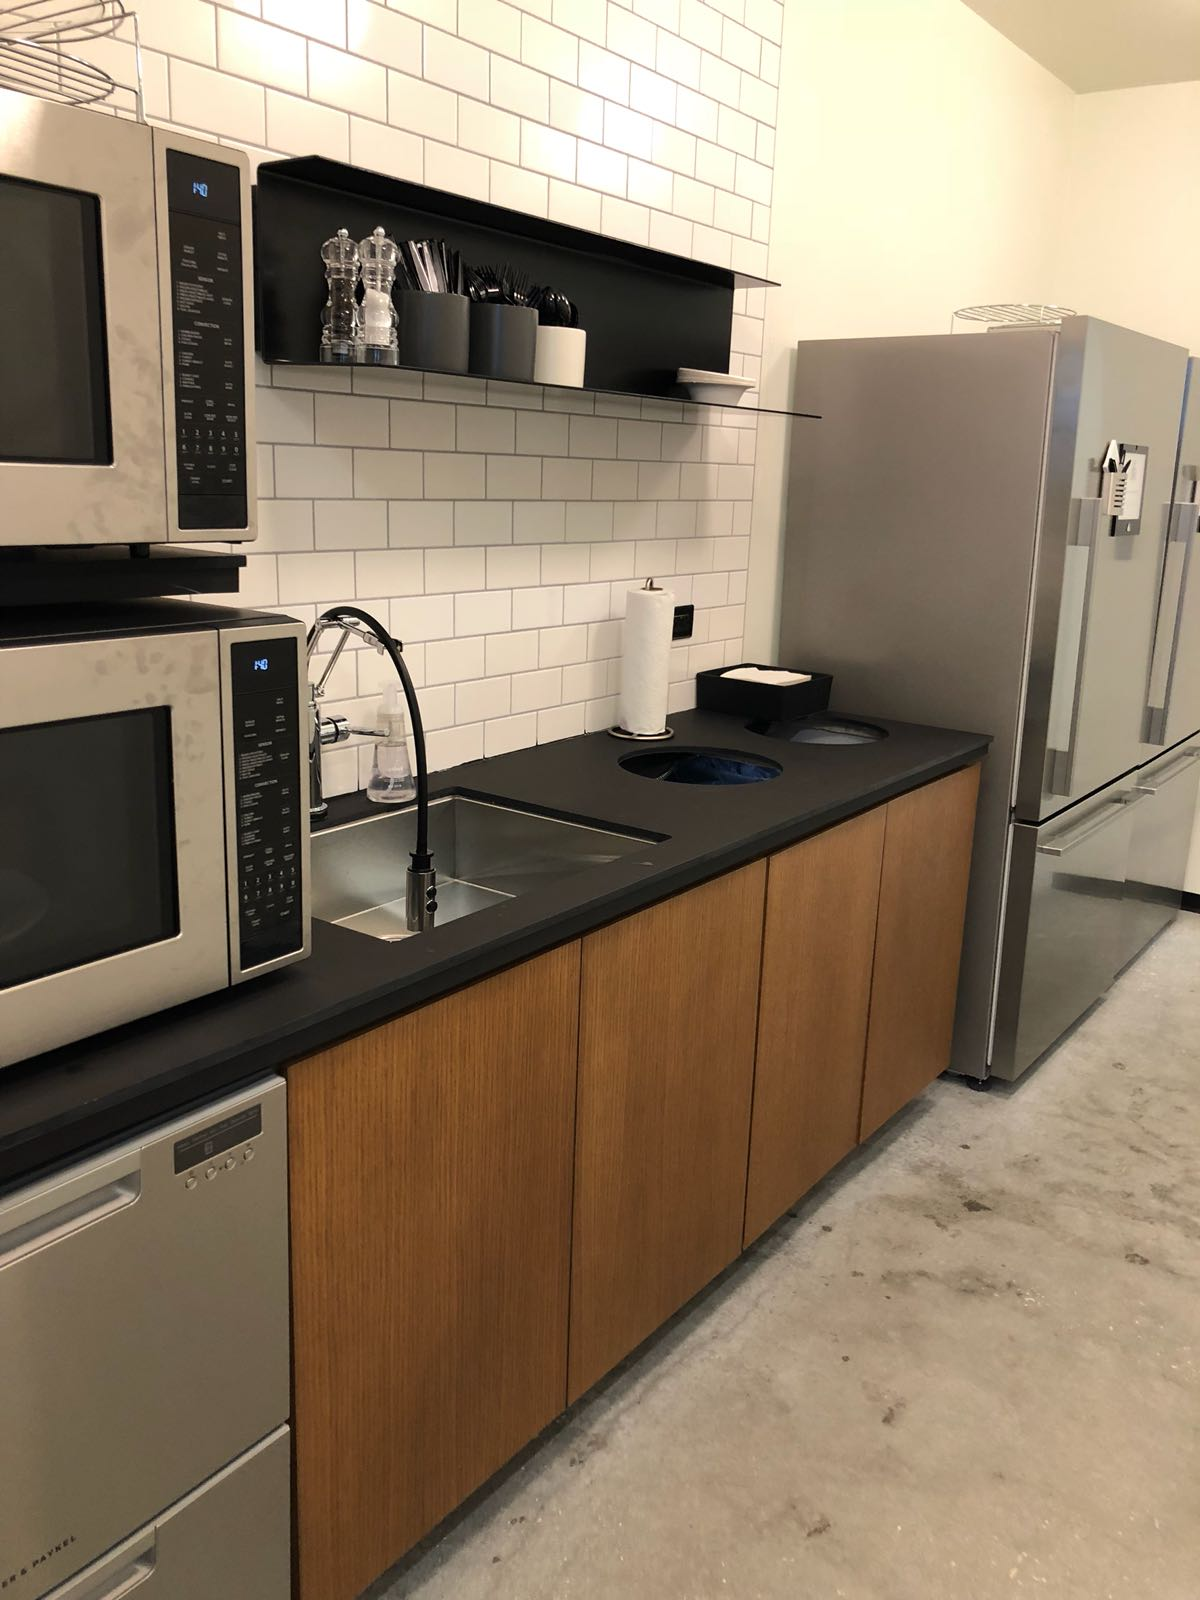 Orlando Bloggers June 2018 Meetup Industrious Orlando shared kitchen area